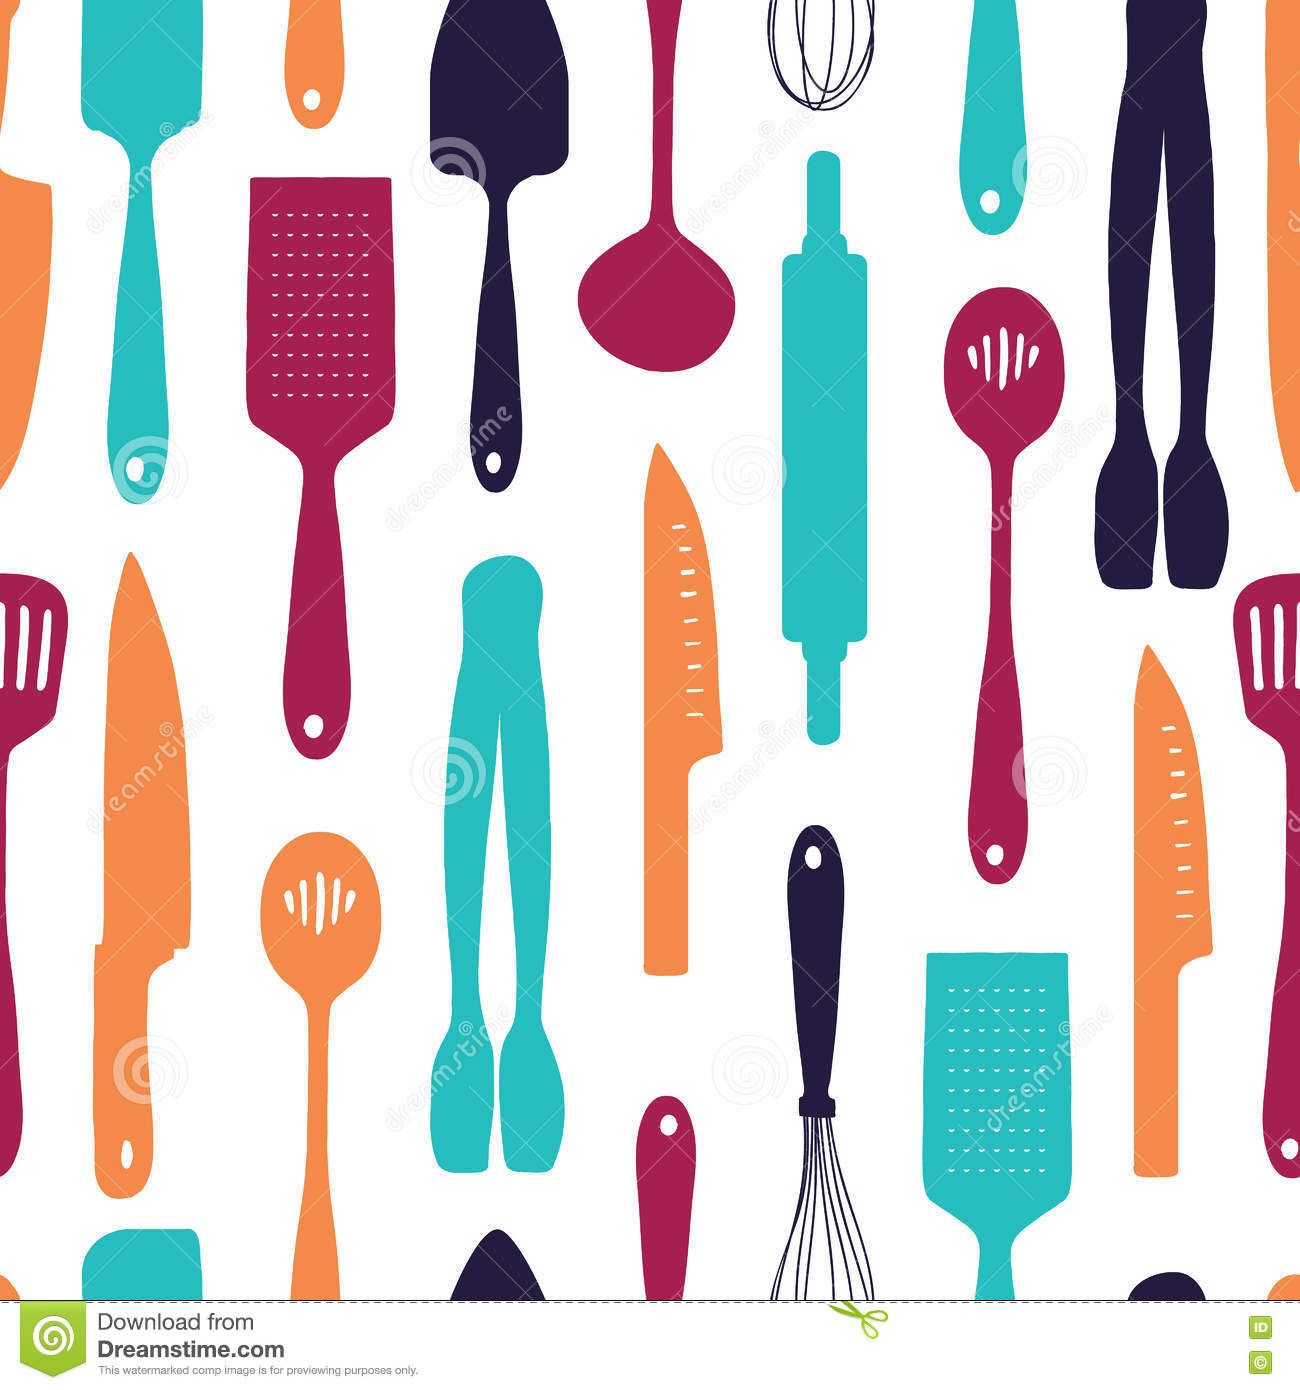 Kitchen Utensils Wallpaper kitchen wallpaper pattern - 1 royalty free stock photography